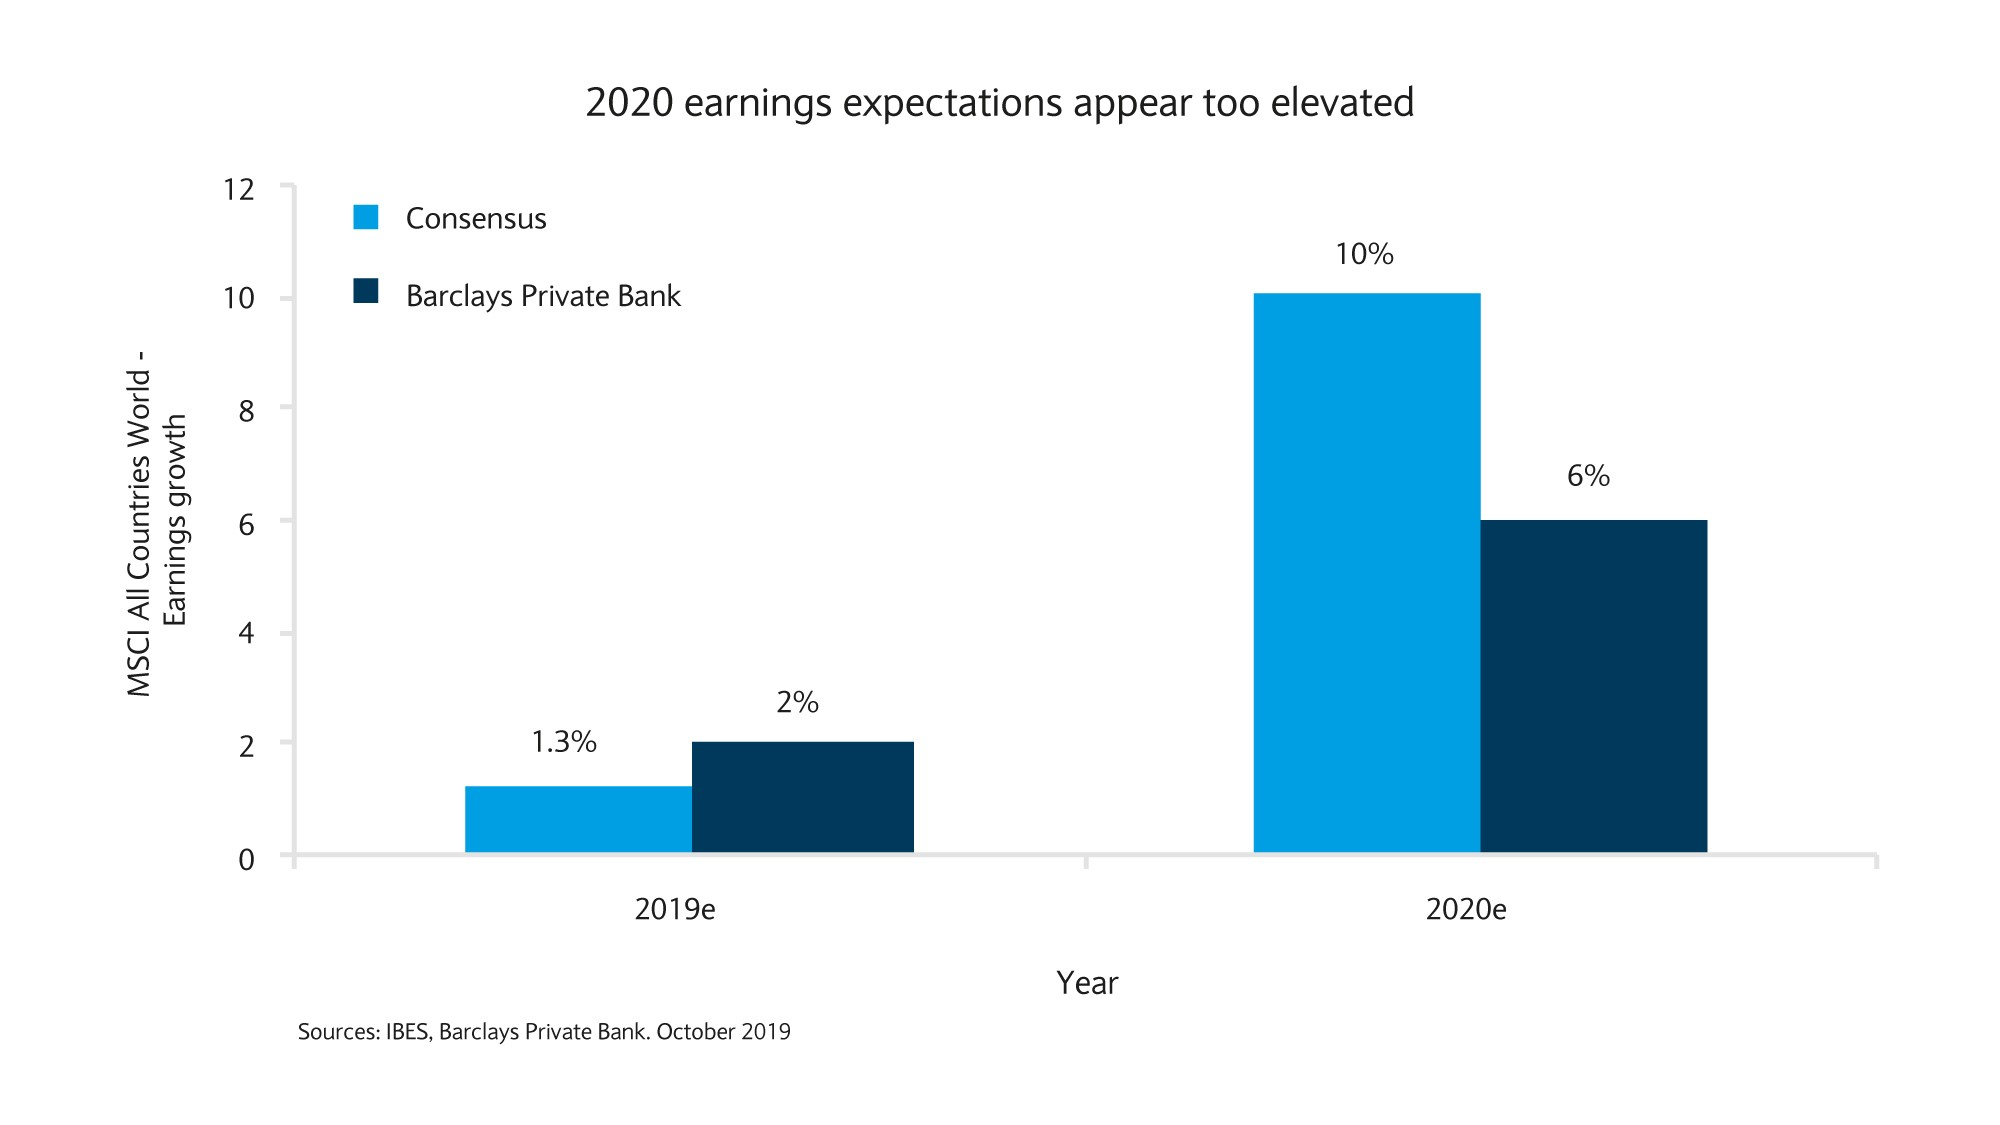 2020 earnings expectations appear too elevated